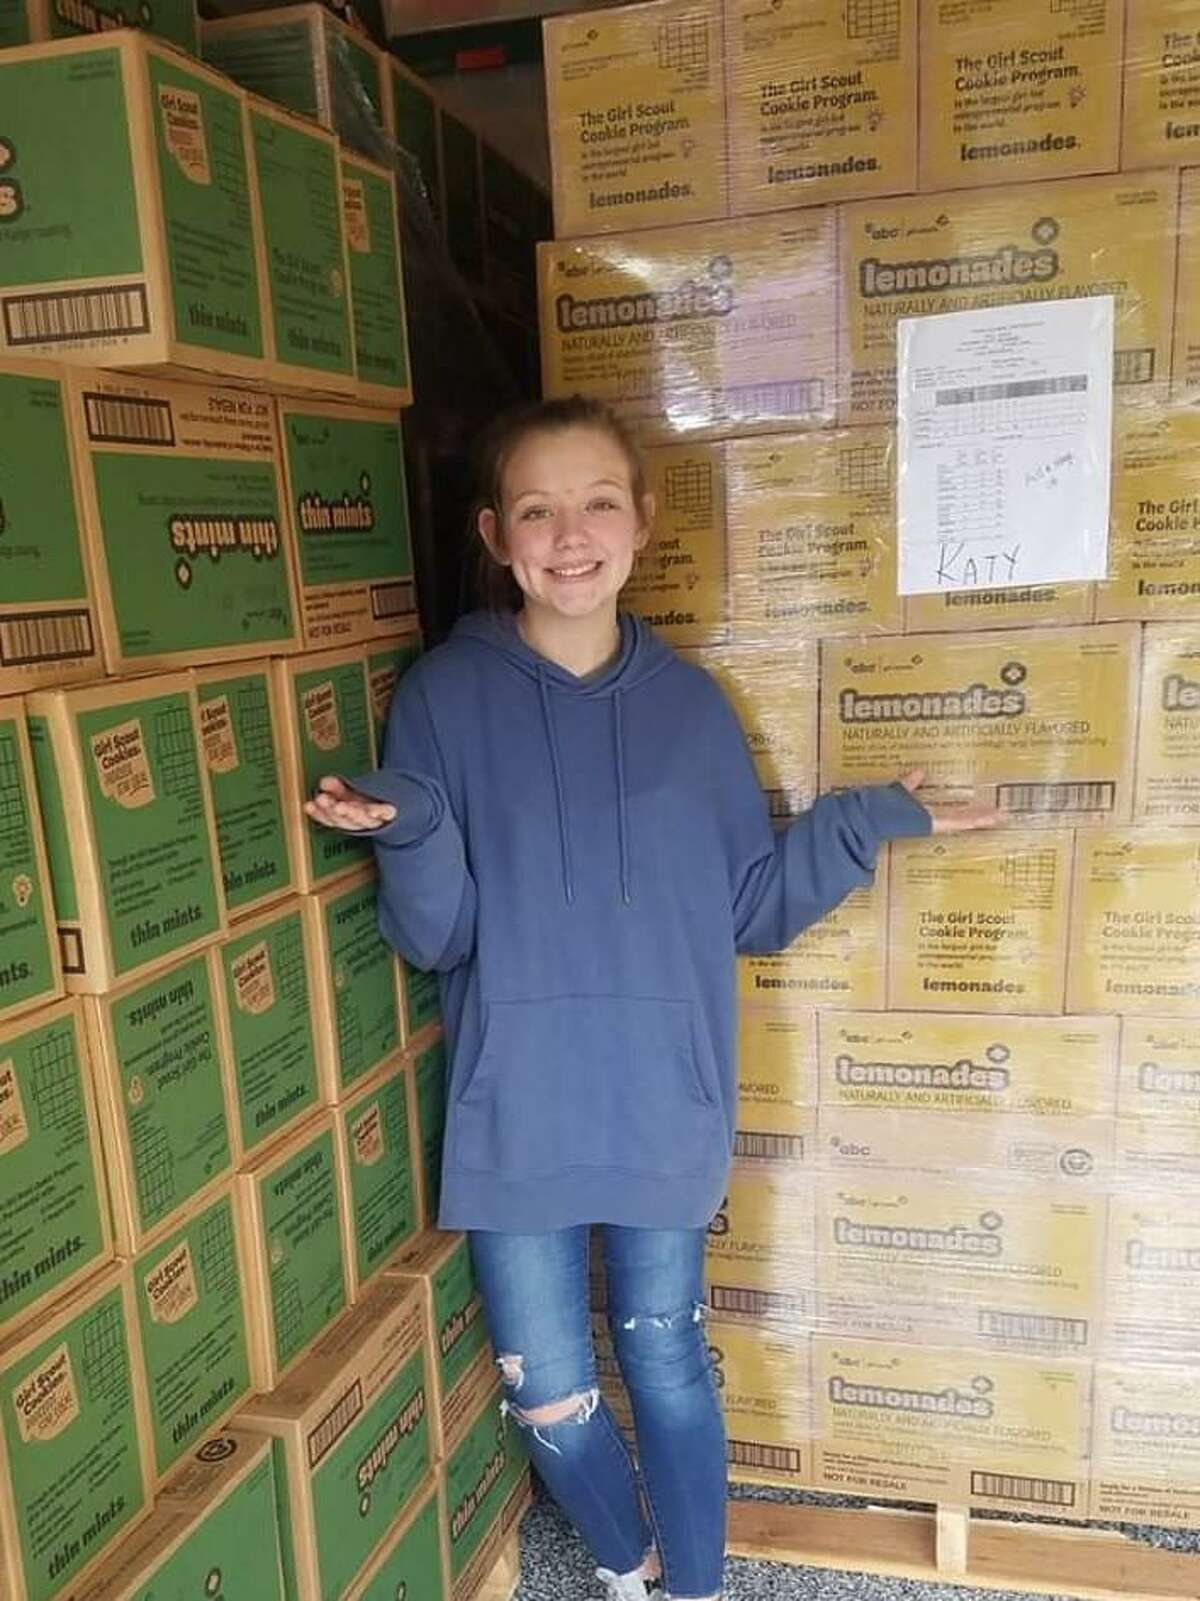 KayLee Belle Sullivan poses with boxes of cookies at her Girl Scout troop's cookie cupboard.